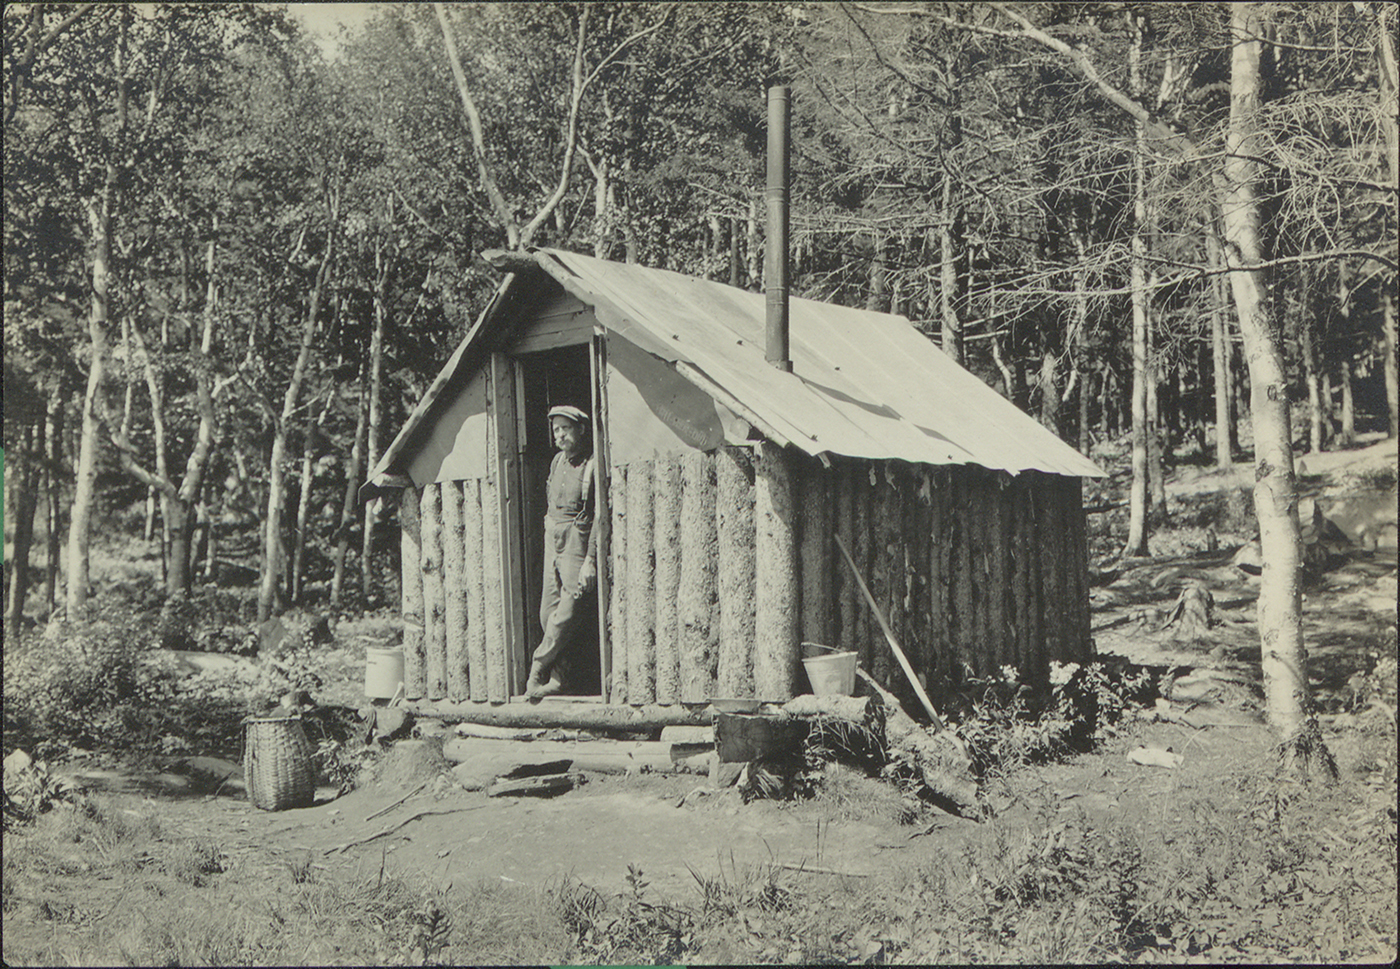 A man leaning against the doorway of an Adirondack a migrant hunting cabin, circa 1915.